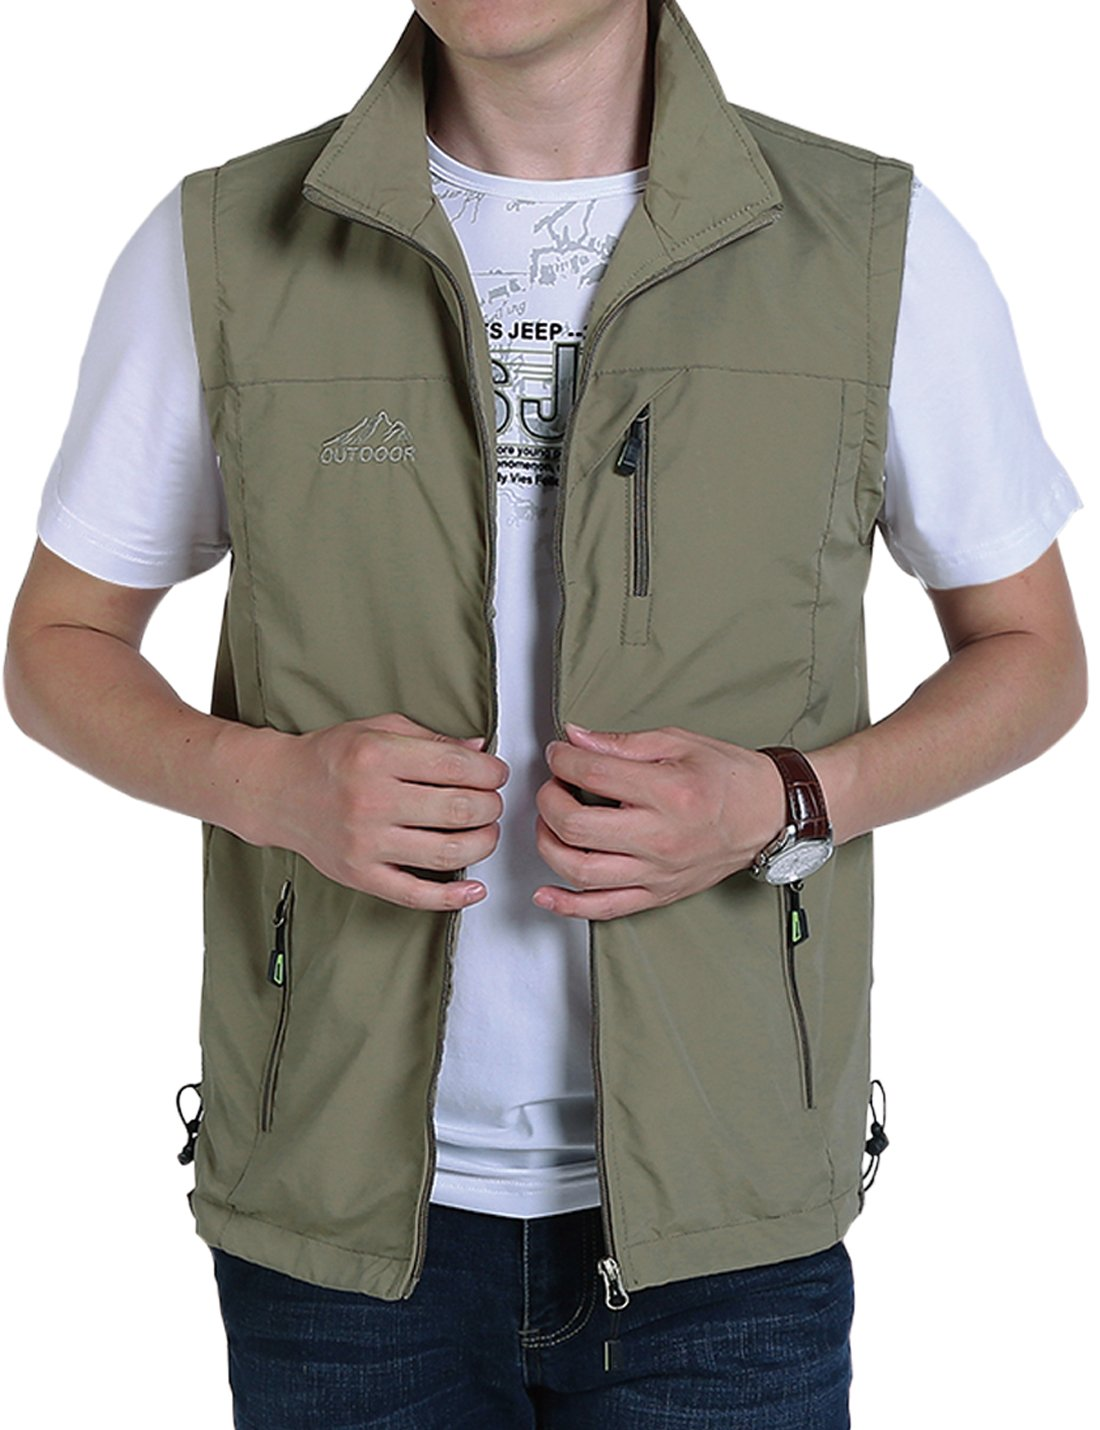 Jenkoon Men's Casual Lightweight Outdoor Travel Fishing Hunting Vest Jacket with Pockets (Khaki, Medium)